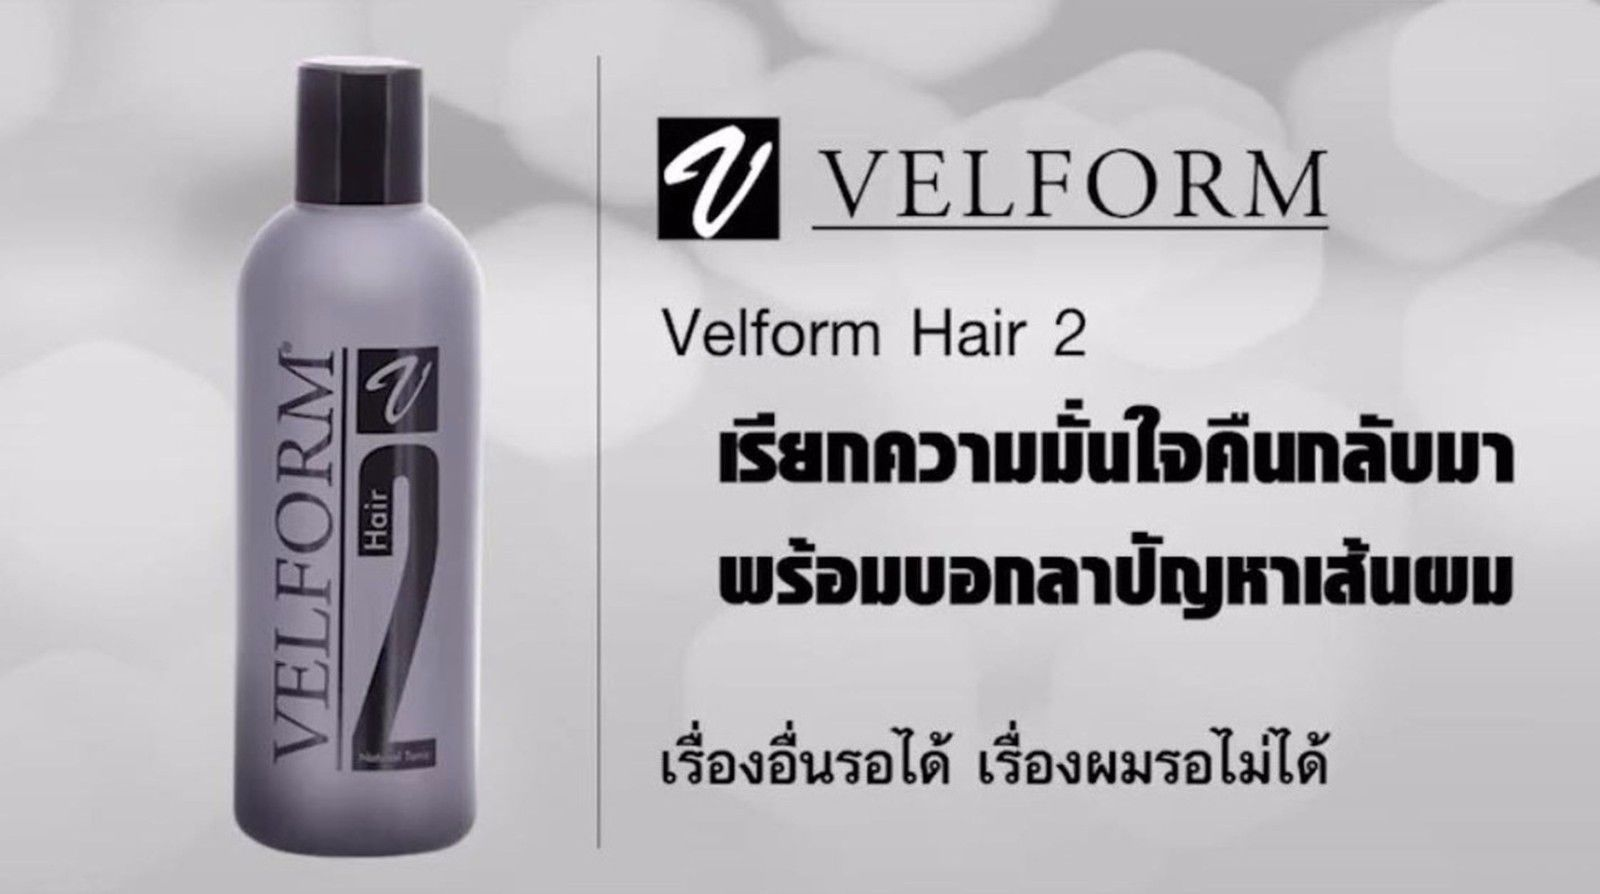 New Velform Hair Care Formula 2 Hair Growth Stop Hair Loss Hair Fall 200 Ml.